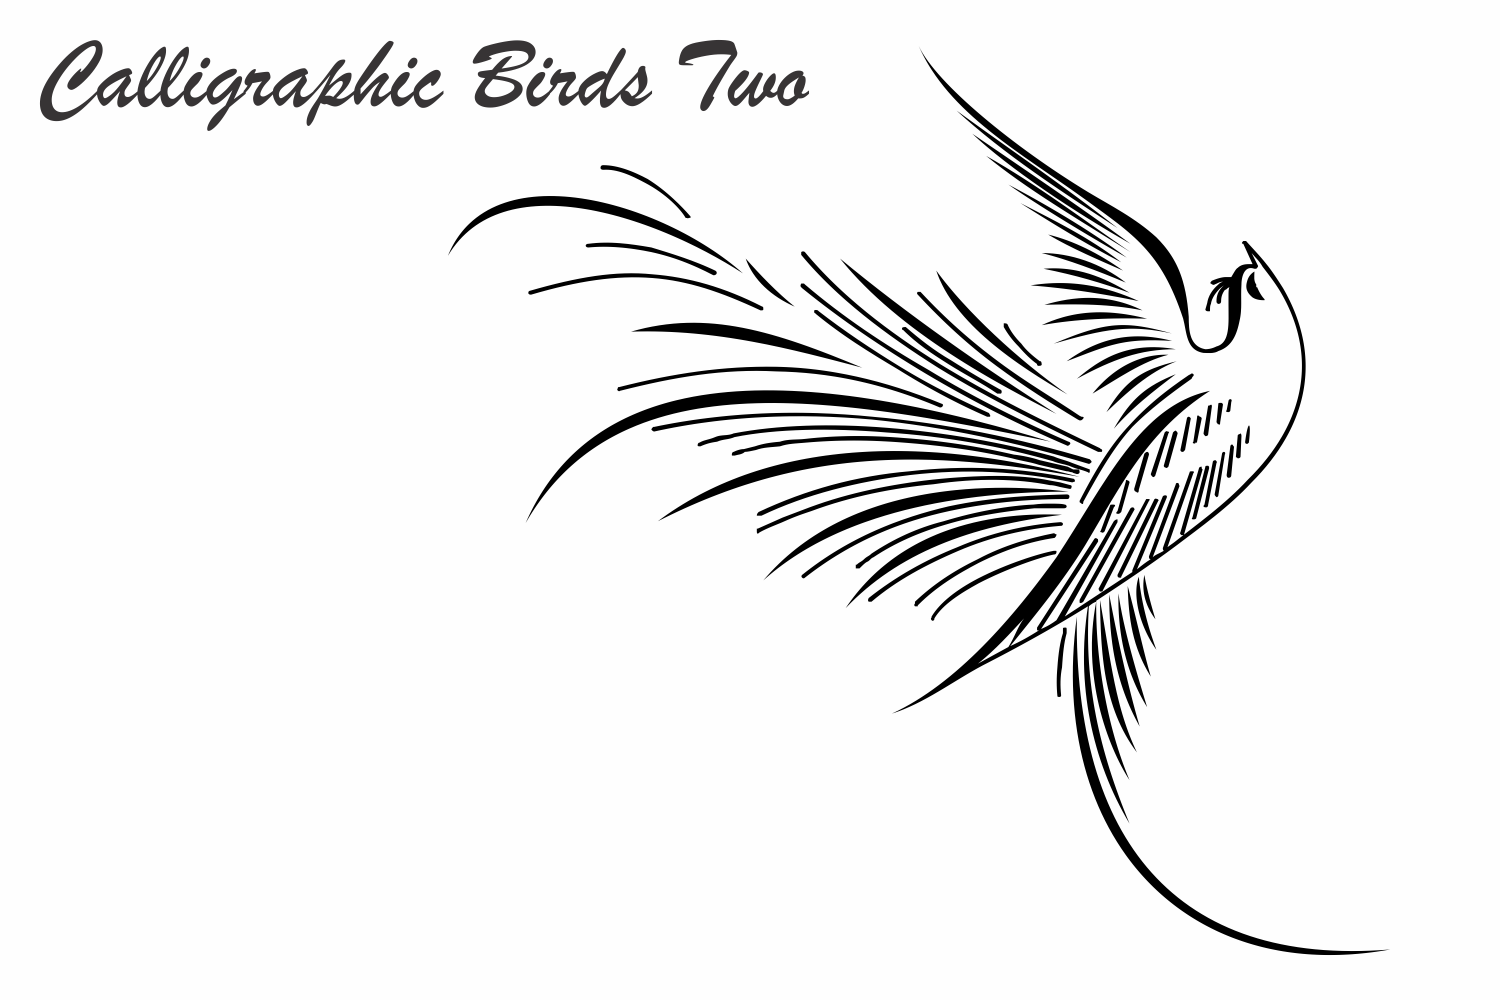 Calligraphic Birds Two example image 2